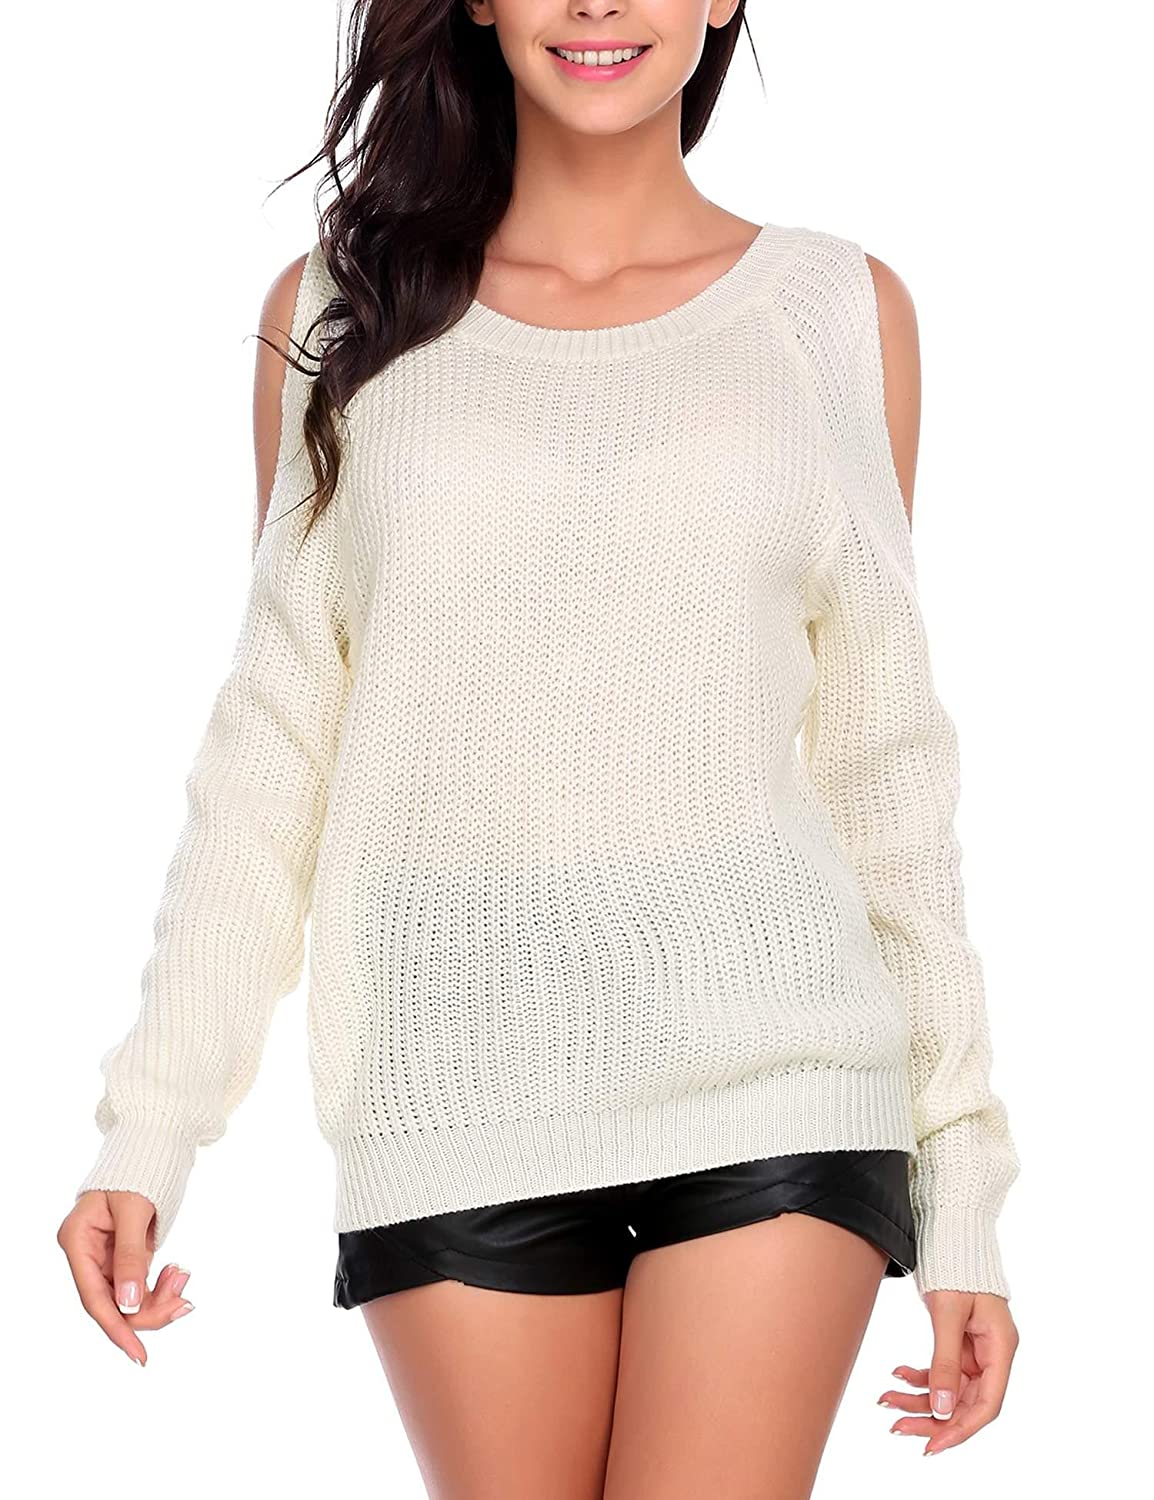 f4a232d756f BeautyUU Women Long Sleeve Ribbed Knit Cut Out Top Cold Open Shoulder  Sweater Blouse at Amazon Women s Clothing store